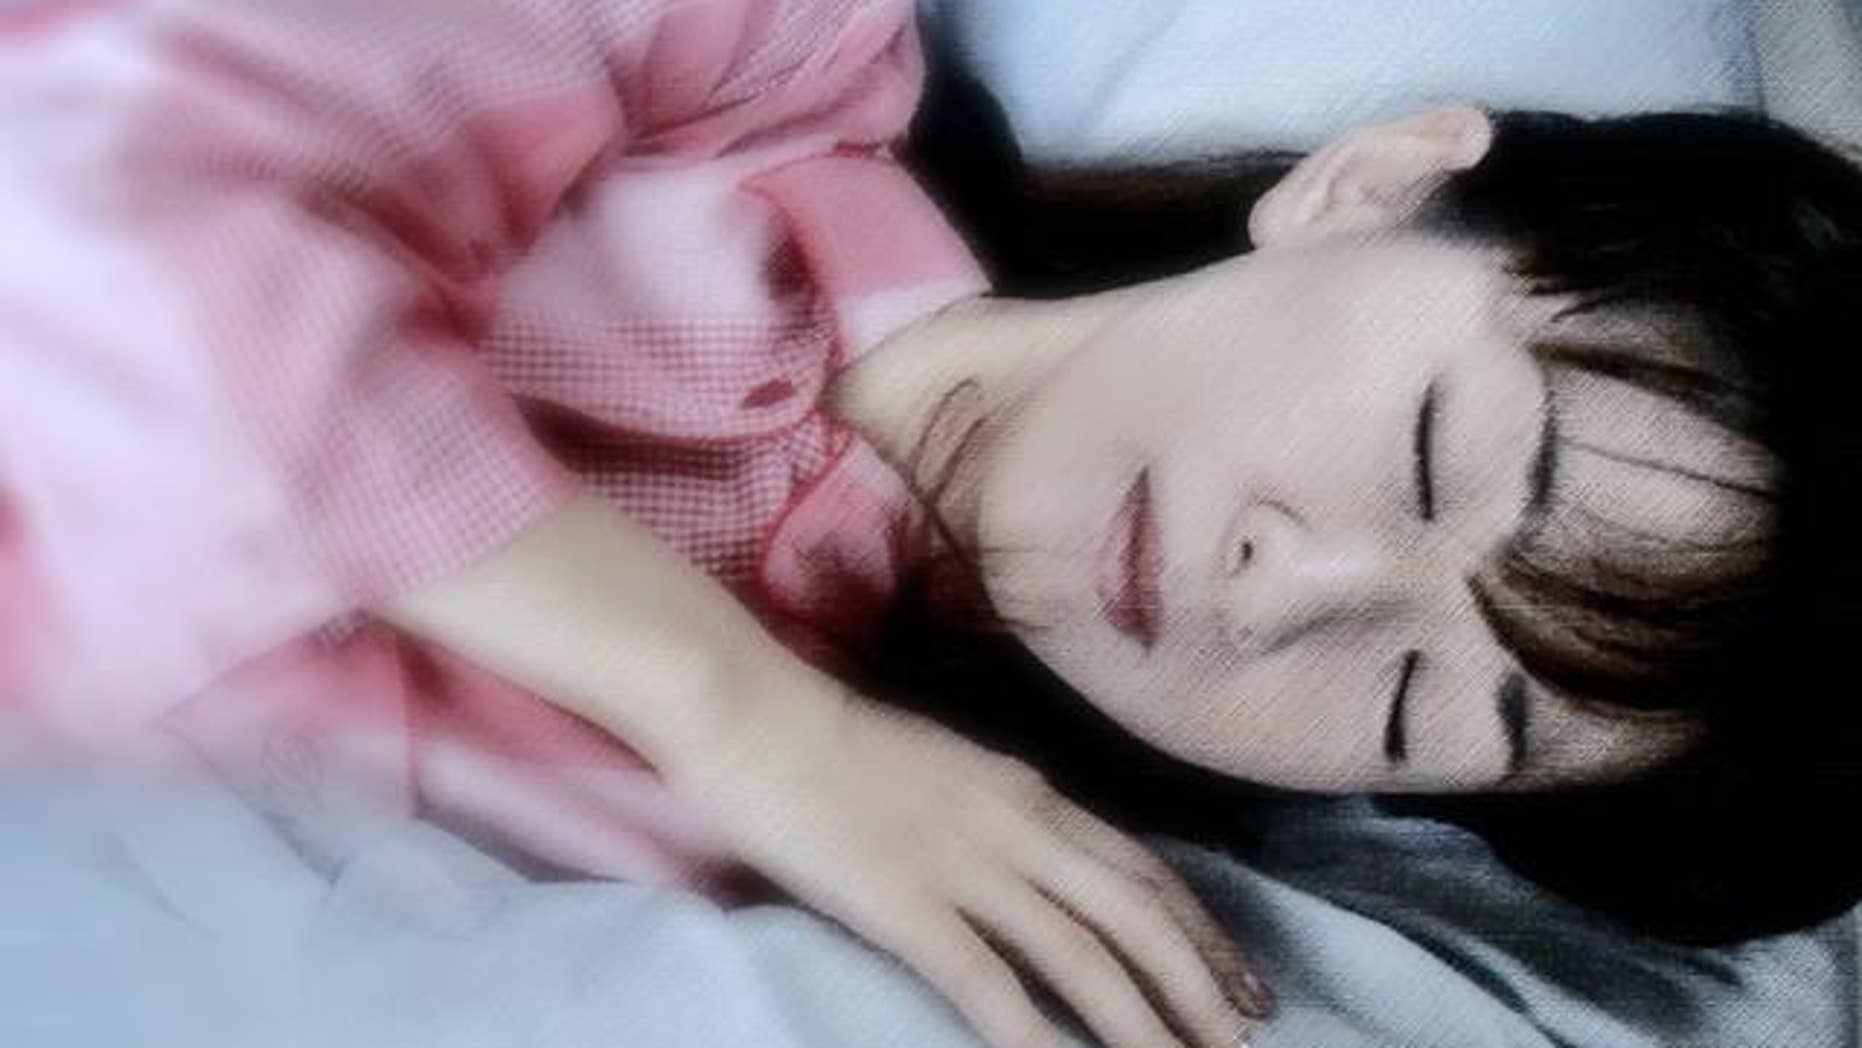 """Junko Suzuki, a radio DJ, demonstrates how she sleeps with a """"Boyfriend's Arm Pillow"""" in Tokyo Friday, Sept. 24, 2004.  The pillow manufactured by linen maker Kameo Corp. consists of a headless torso and a stuffed arm that curls around the sleeper. It might make some people uneasy but have sold about 1,000  in Japan since the product went on the market last December. The maker says the pillow is not only an emotional comfort, but that its shape keeps the body balanced by supporting the sleeper from both sides. (AP Photo/Koji Sasahara)"""